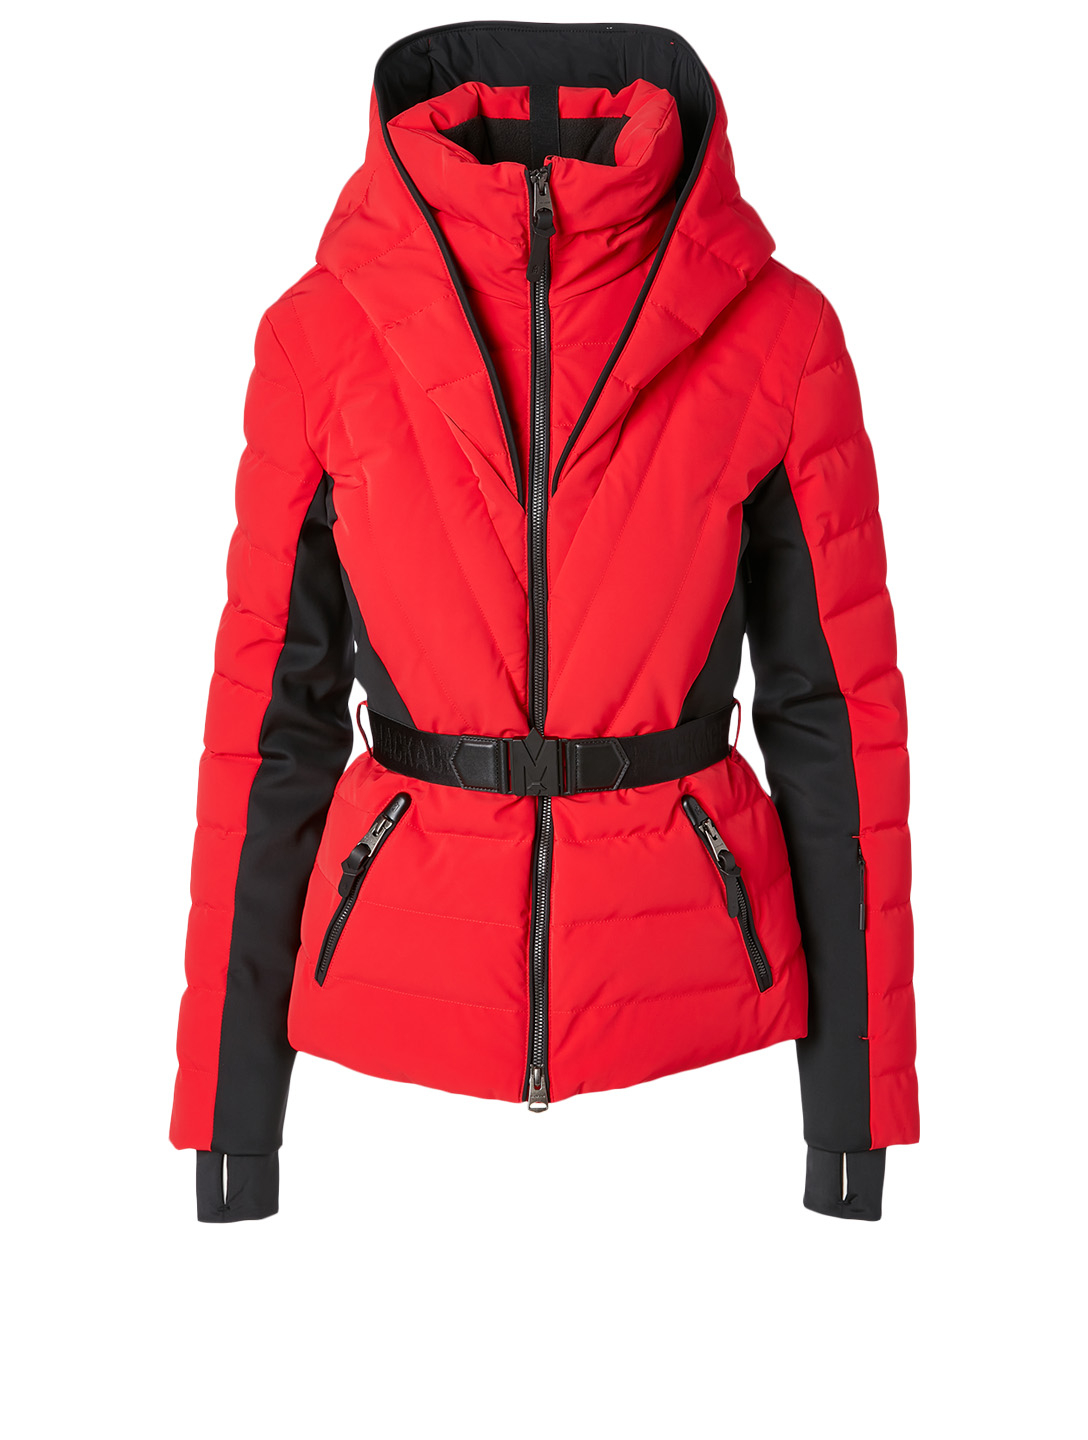 MACKAGE Elita Fitted Down Jacket Women's Red